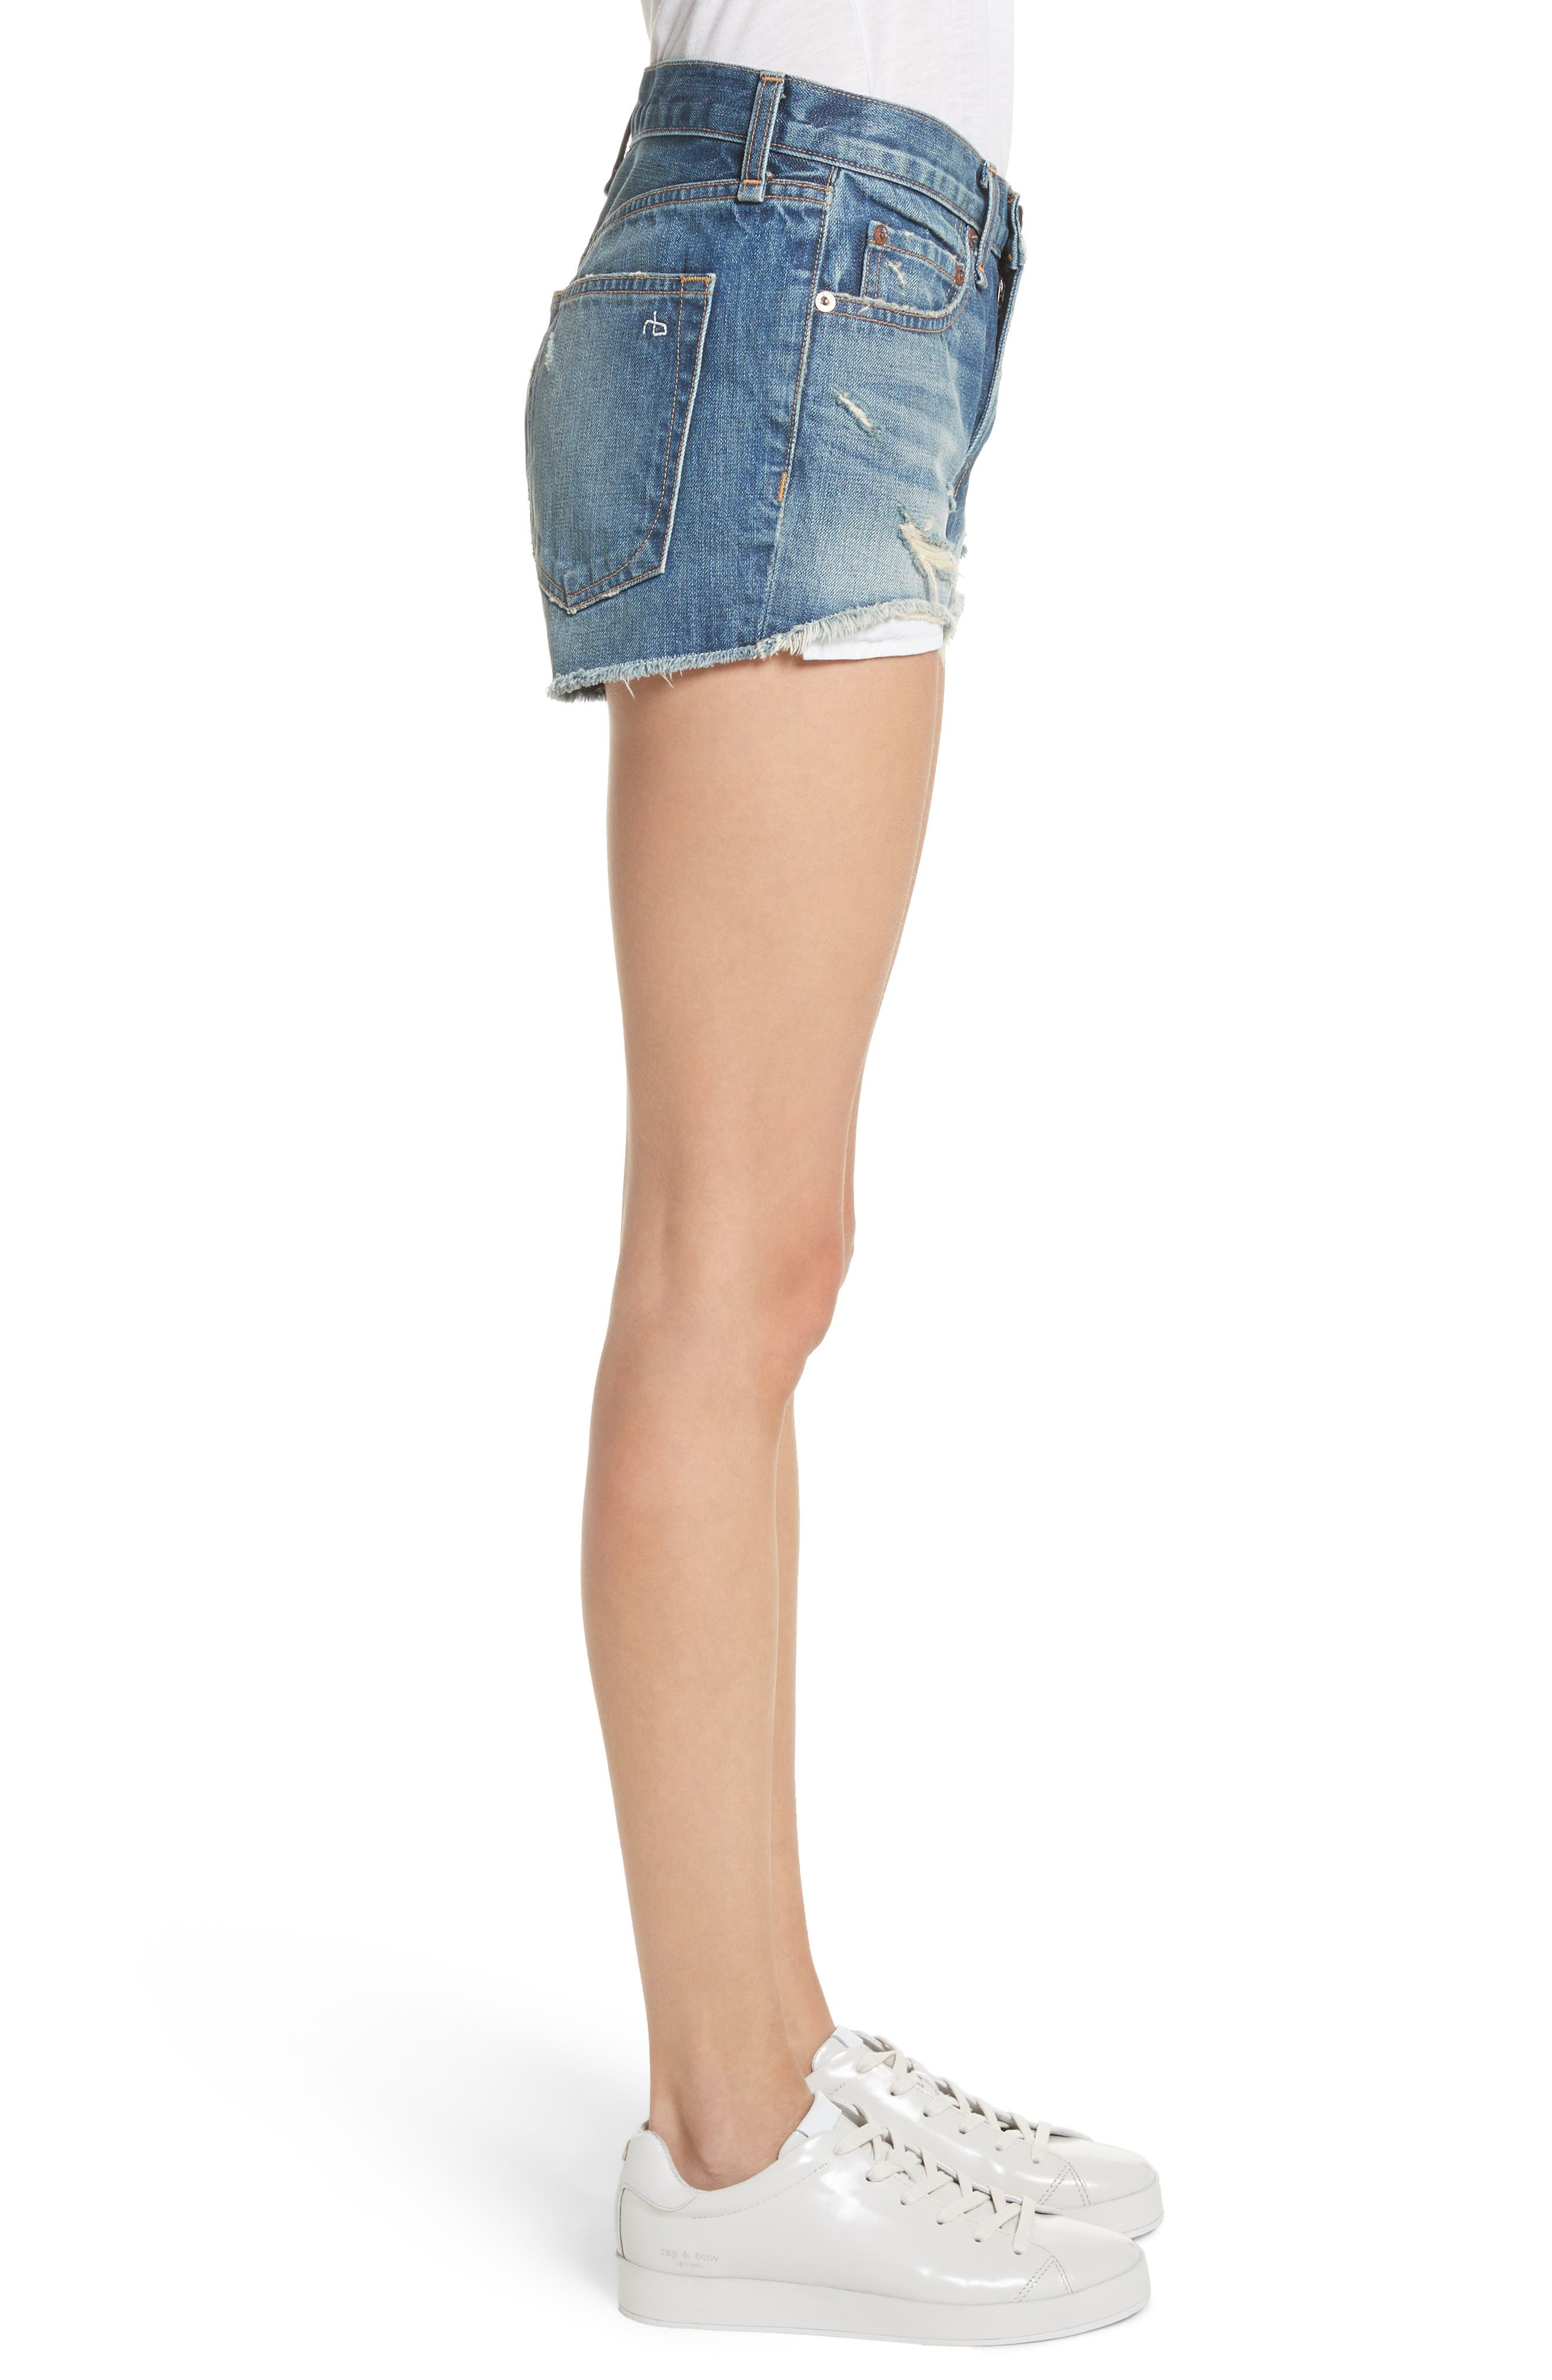 Margaux High Waist Denim Shorts,                             Alternate thumbnail 3, color,                             Rocka Rolla